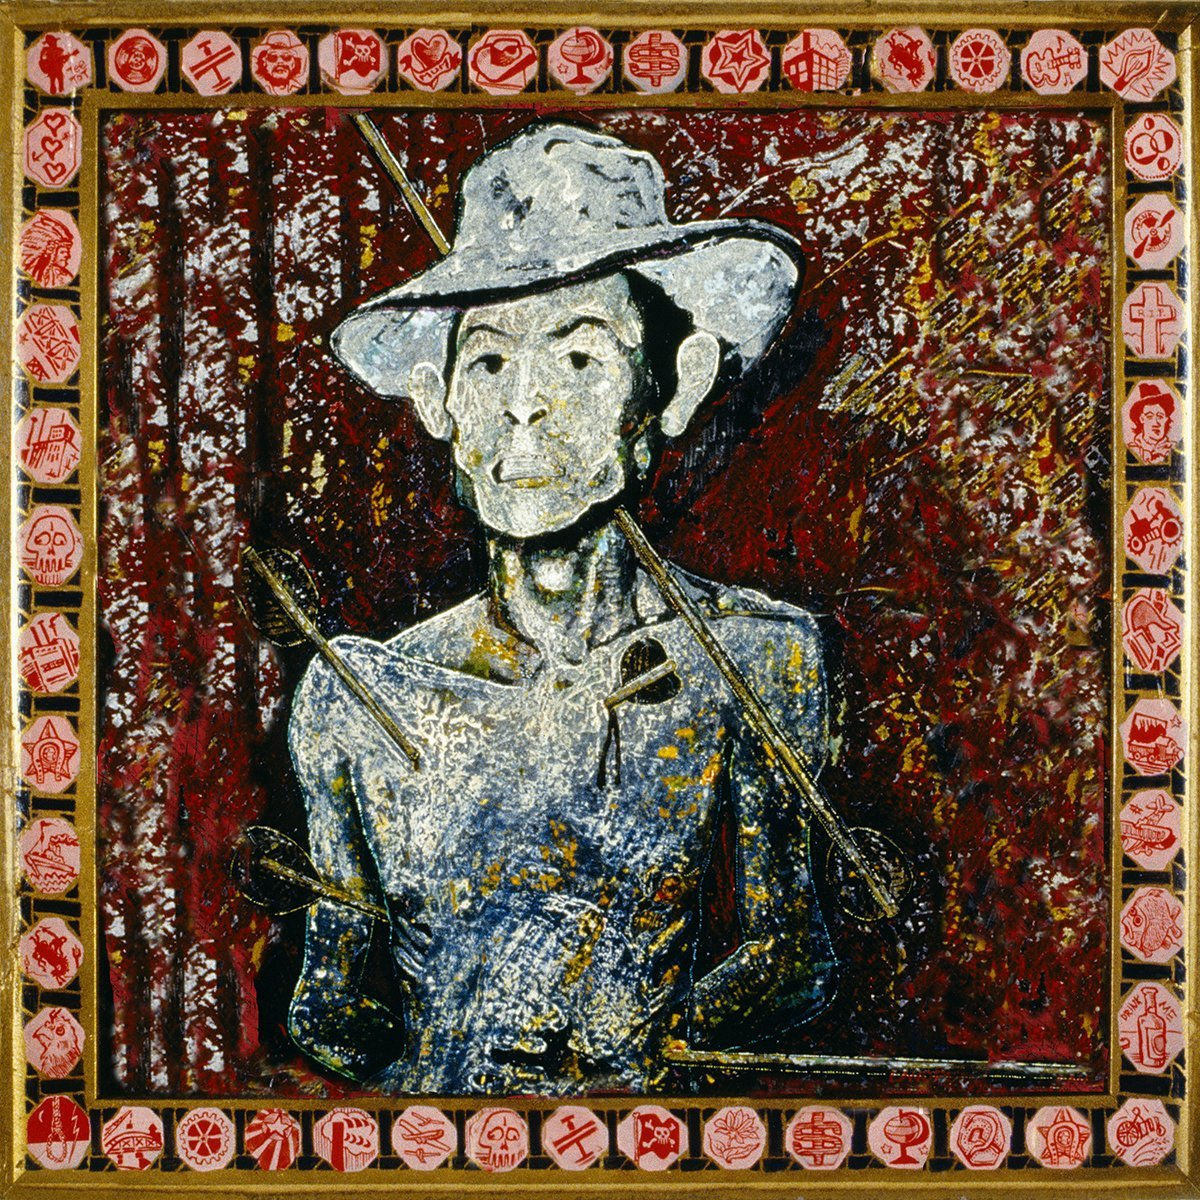 Hank Shot Through With Arrows - Jon Langford - Yard Dog Art